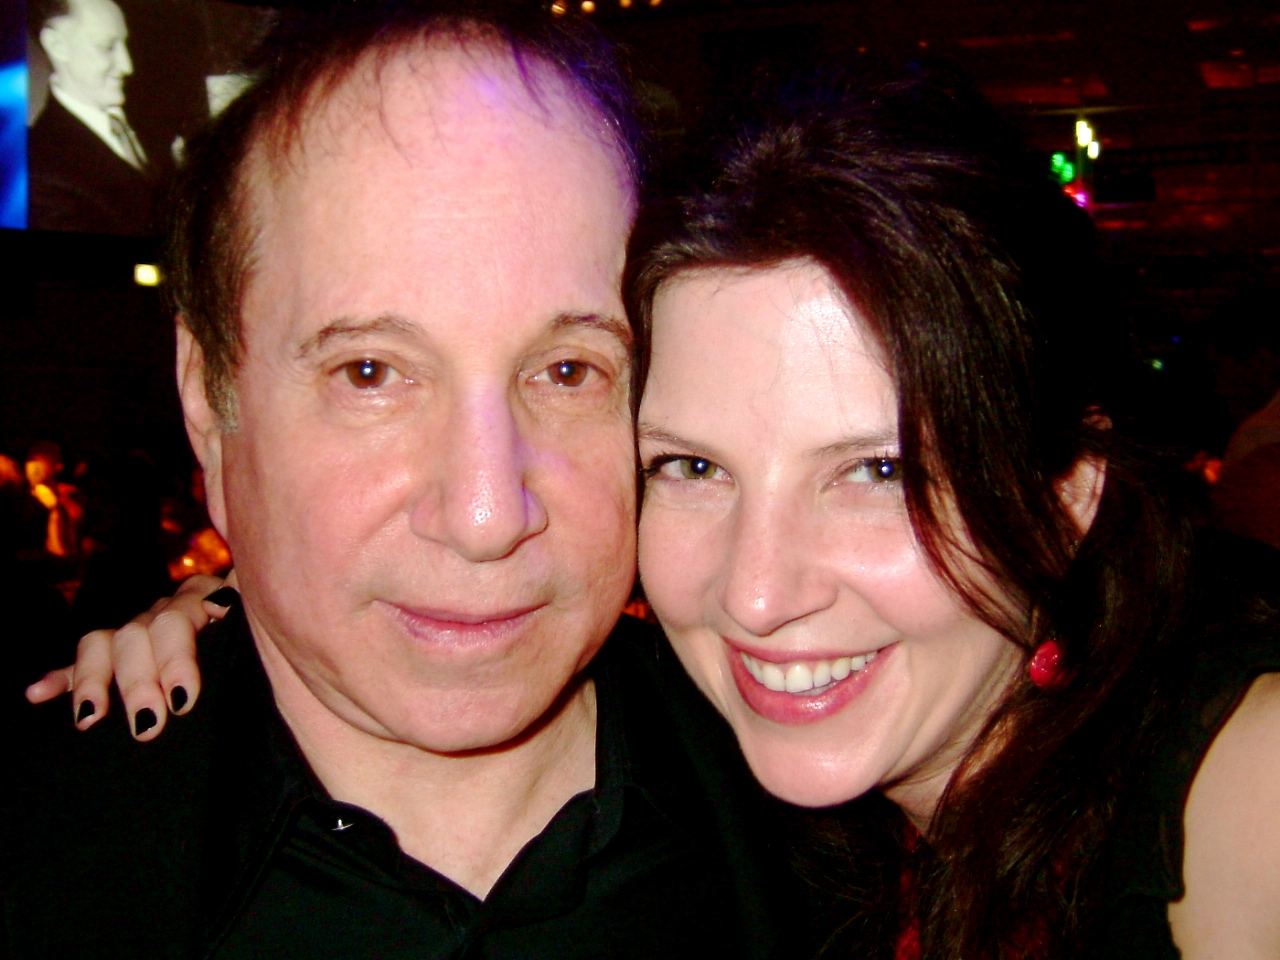 paul simon & me.JPG